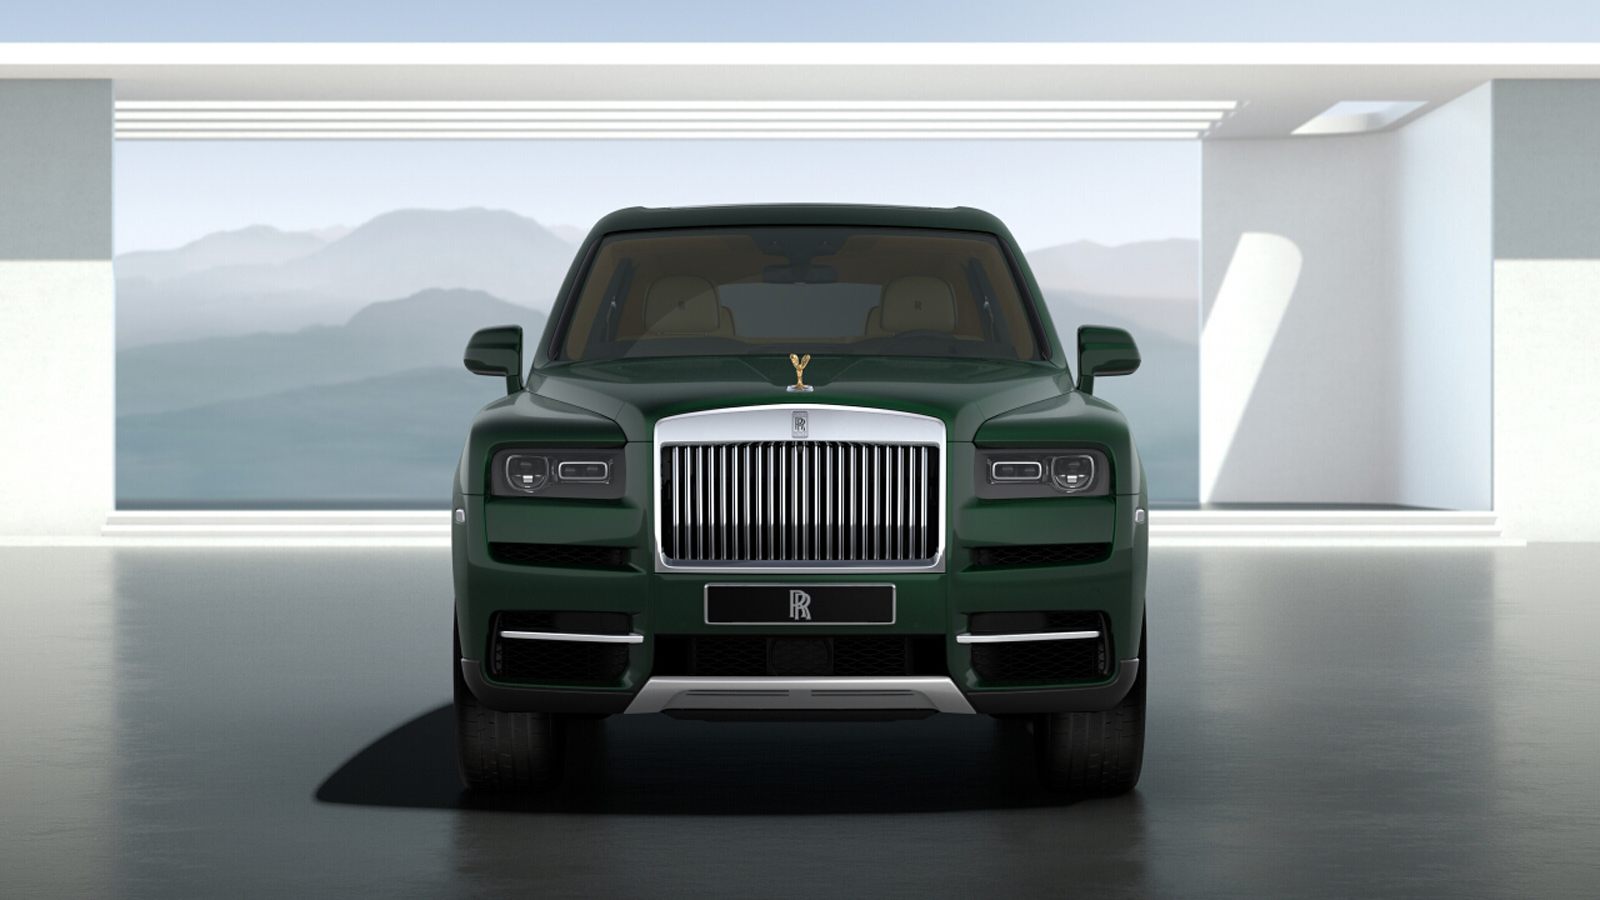 Design Your Own Rolls-Royce Cullinan SUV » AutoGuide.com News